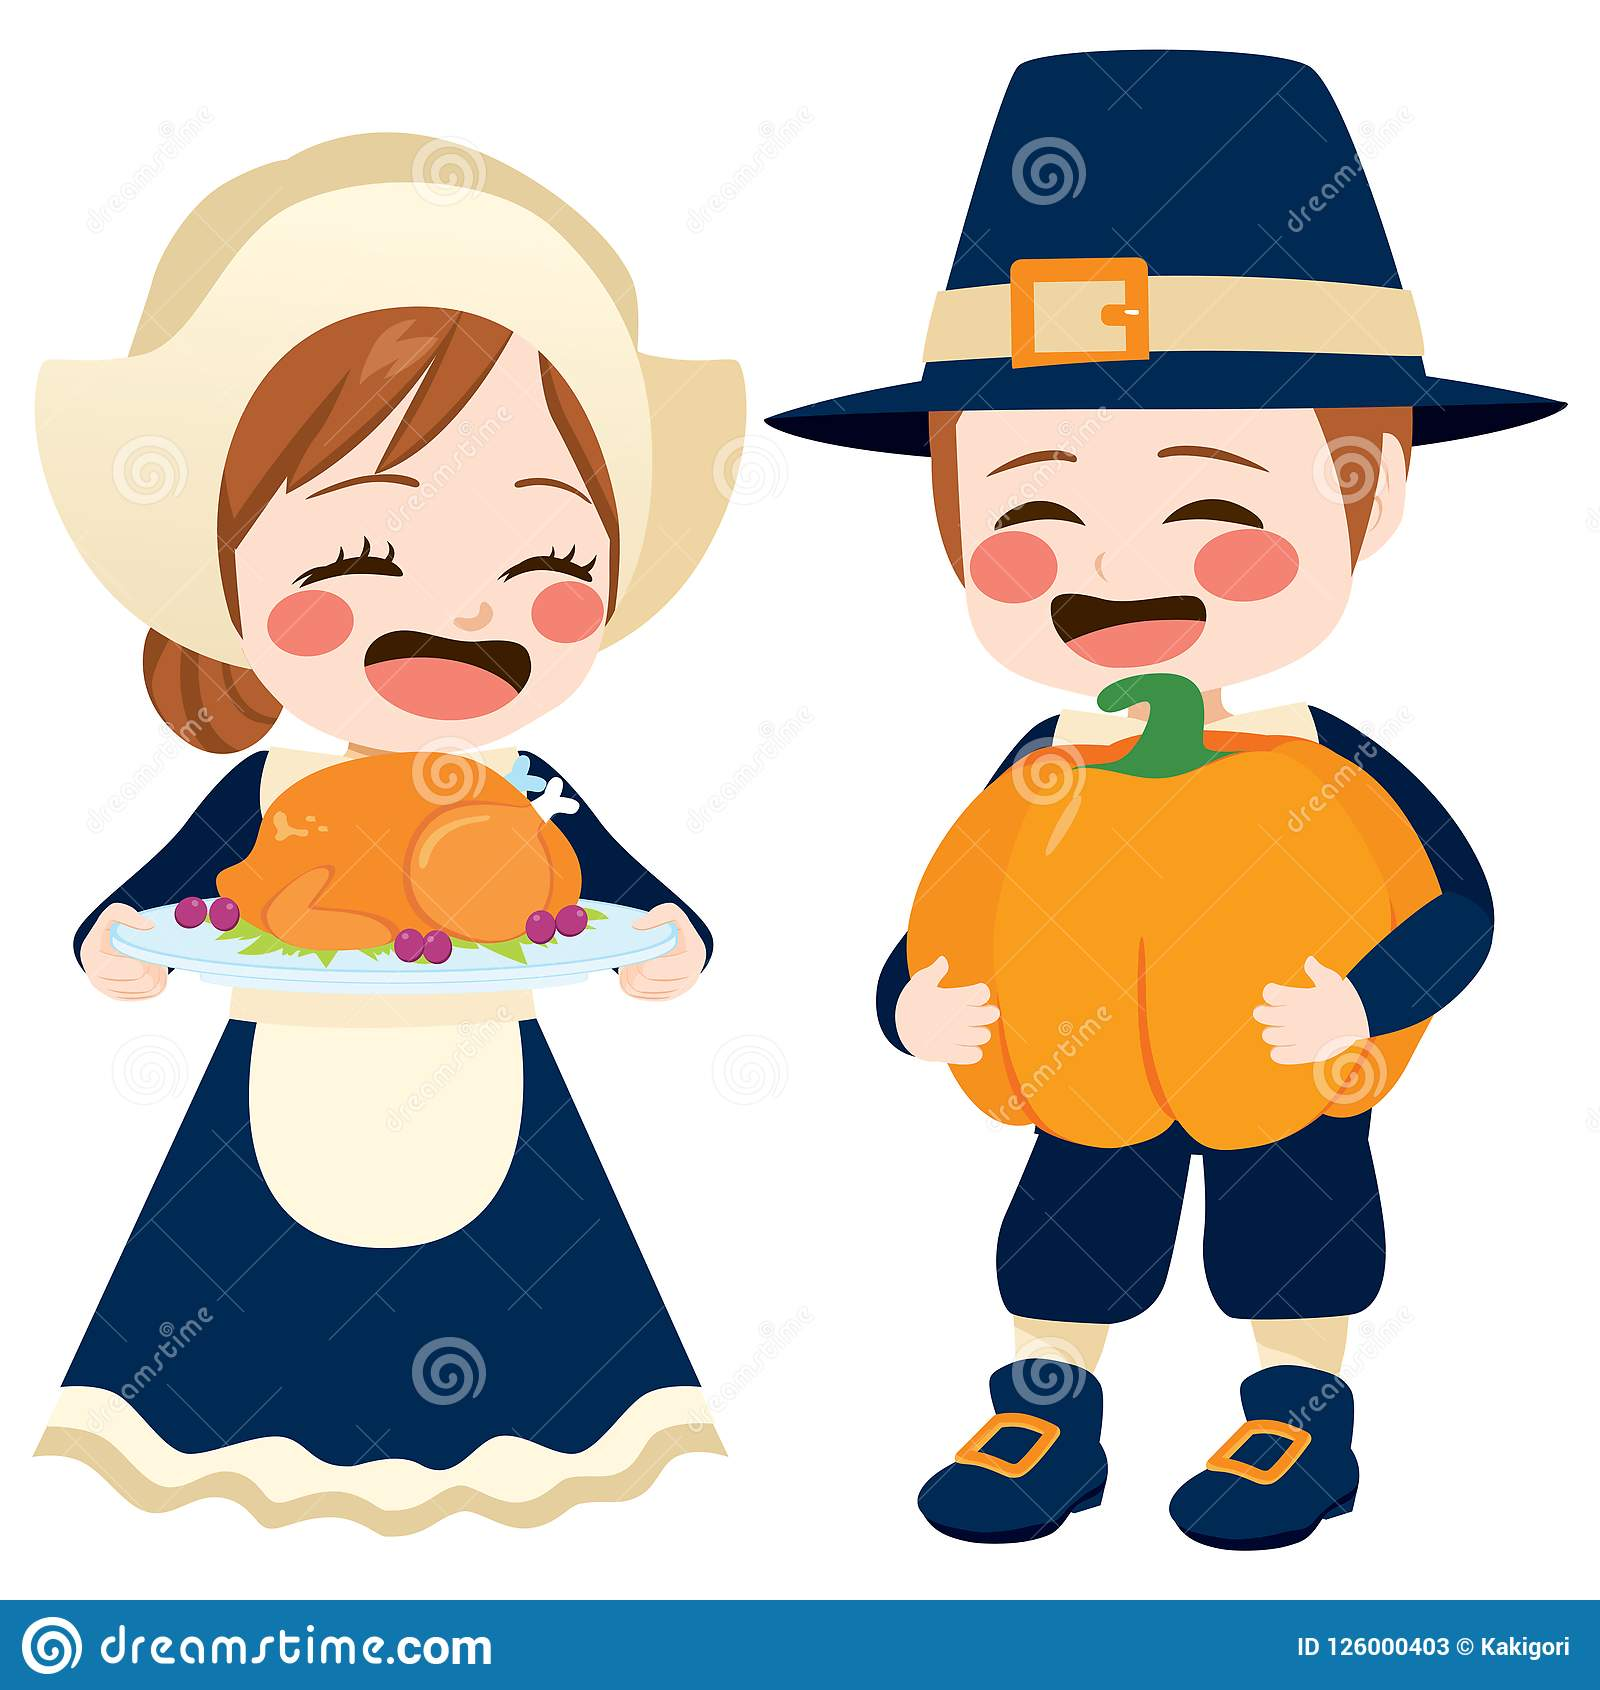 Free Pilgrim Images, Download Free Clip Art, Free Clip Art on Clipart  Library